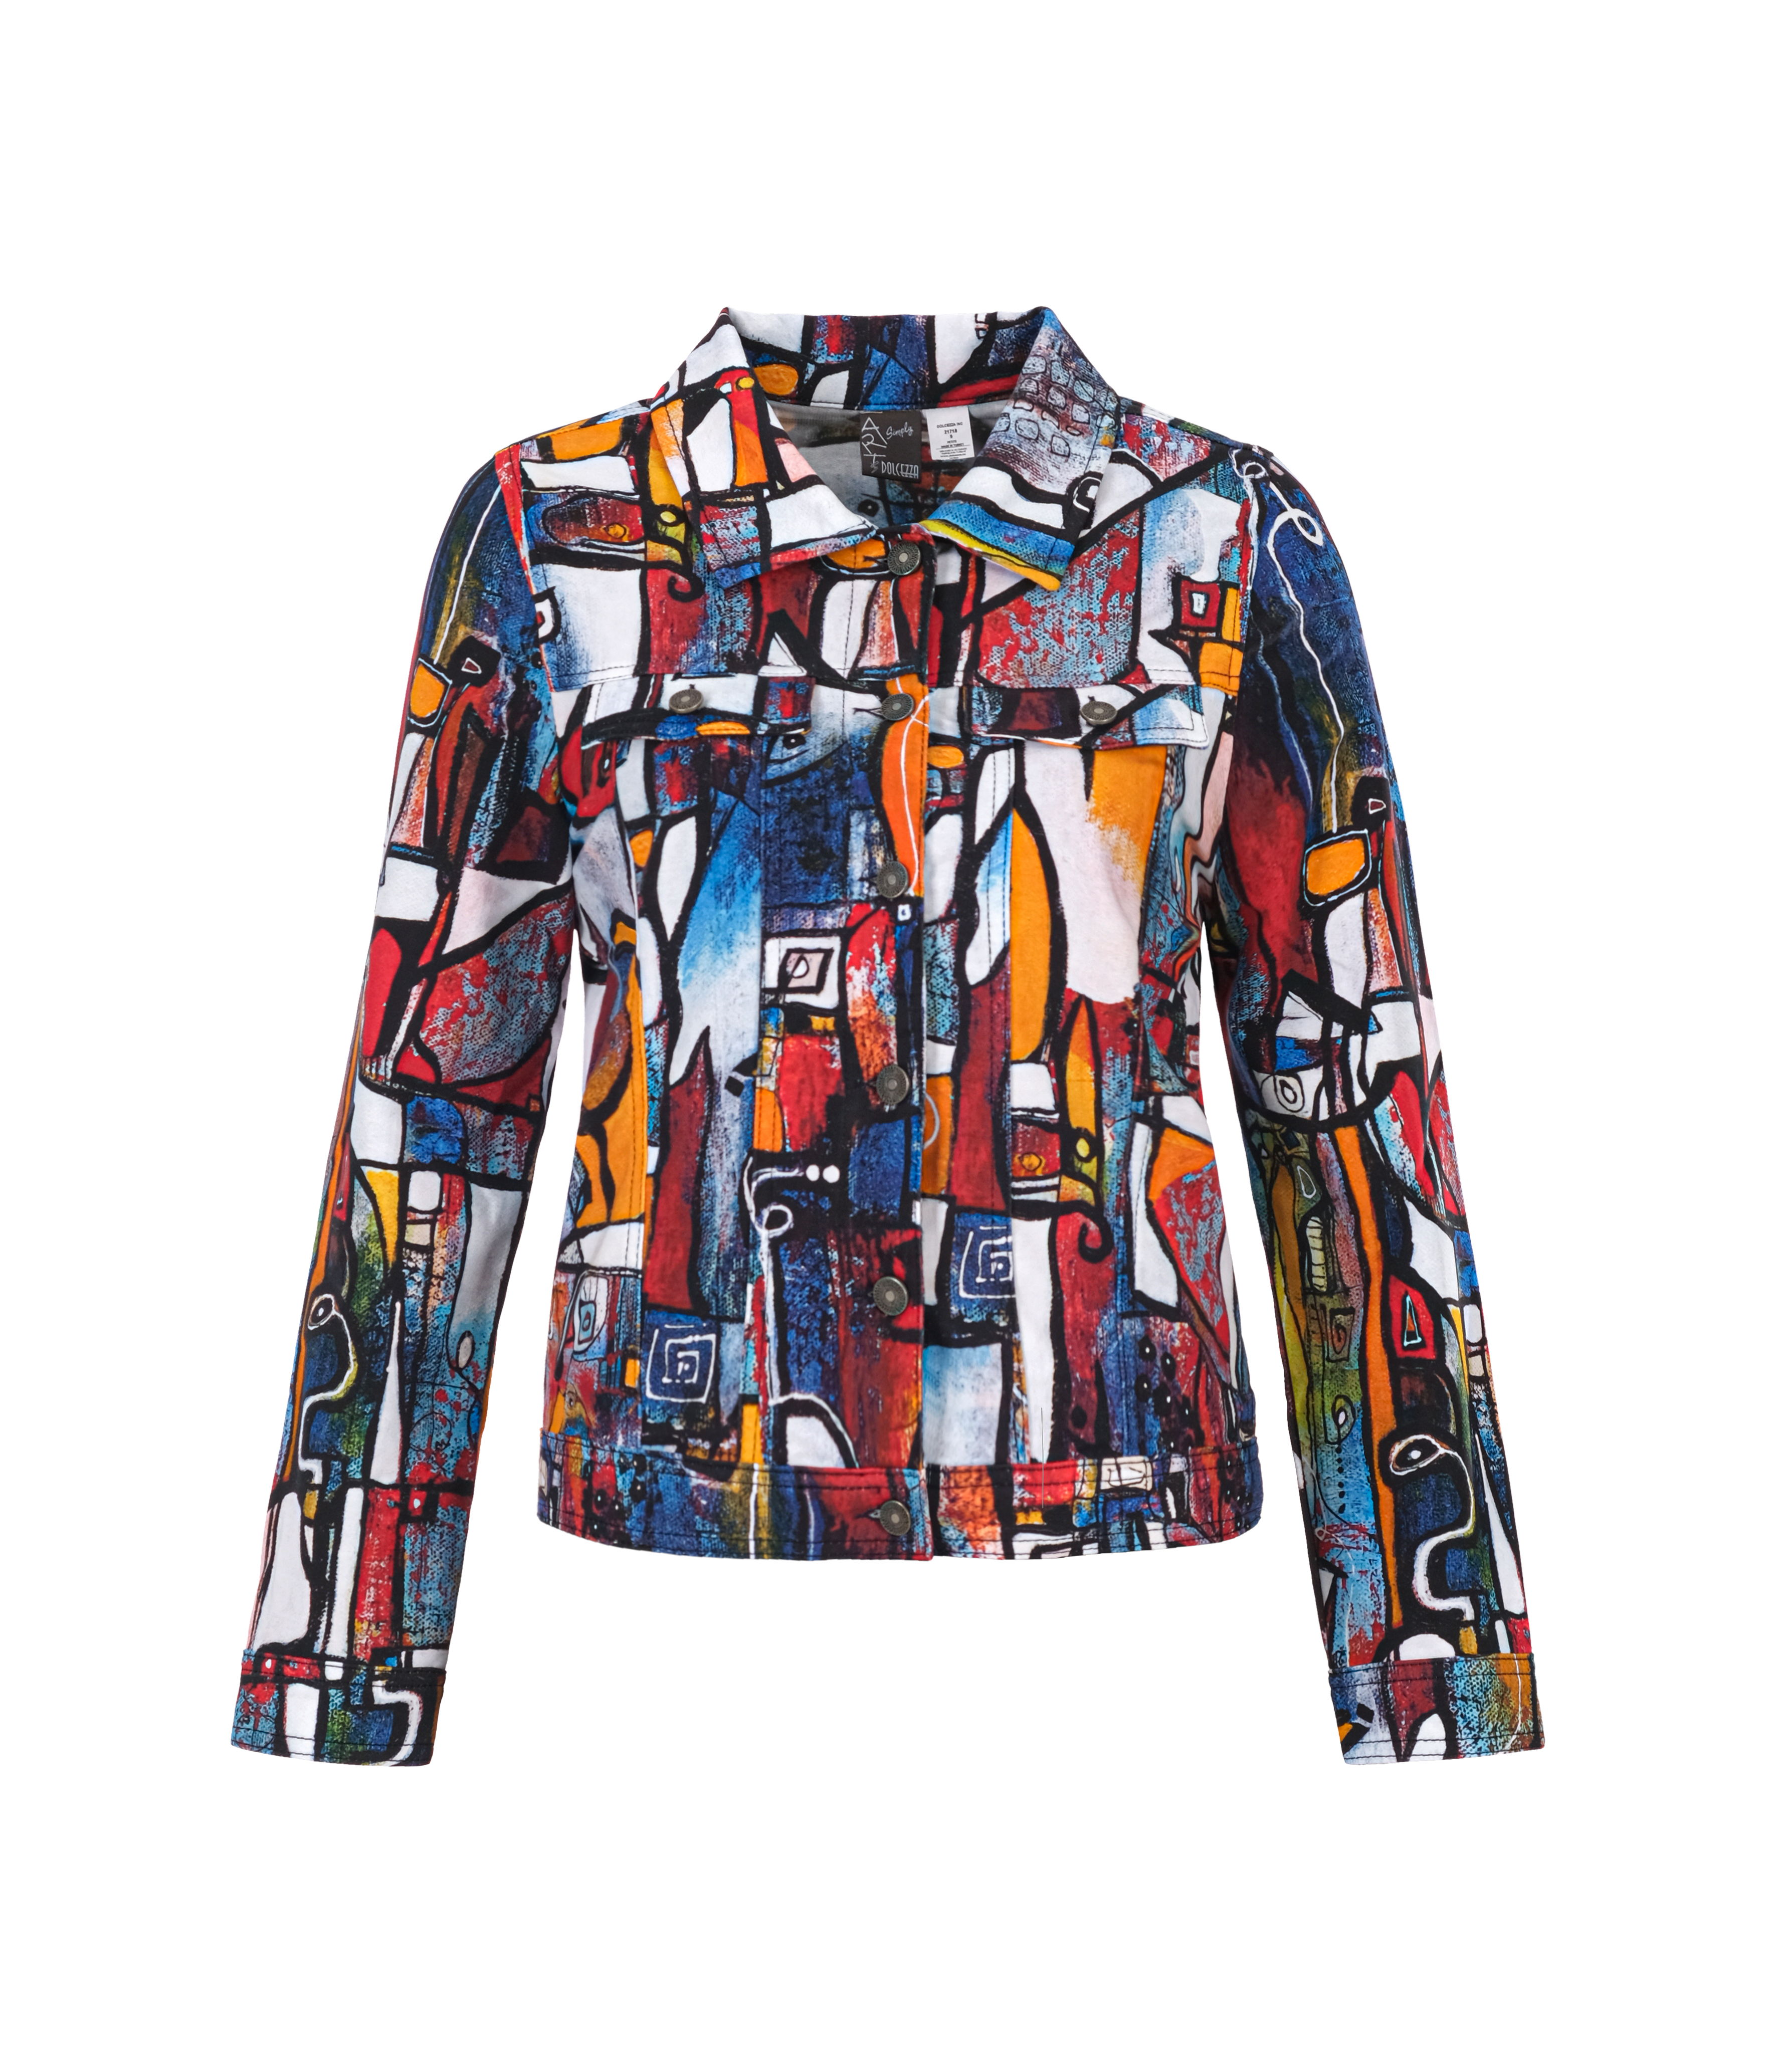 Simply Art Dolcezza: It's Complicated Crazy Cool Abstract Art Soft Denim Jacket Dolcezza_Simplyart_21718